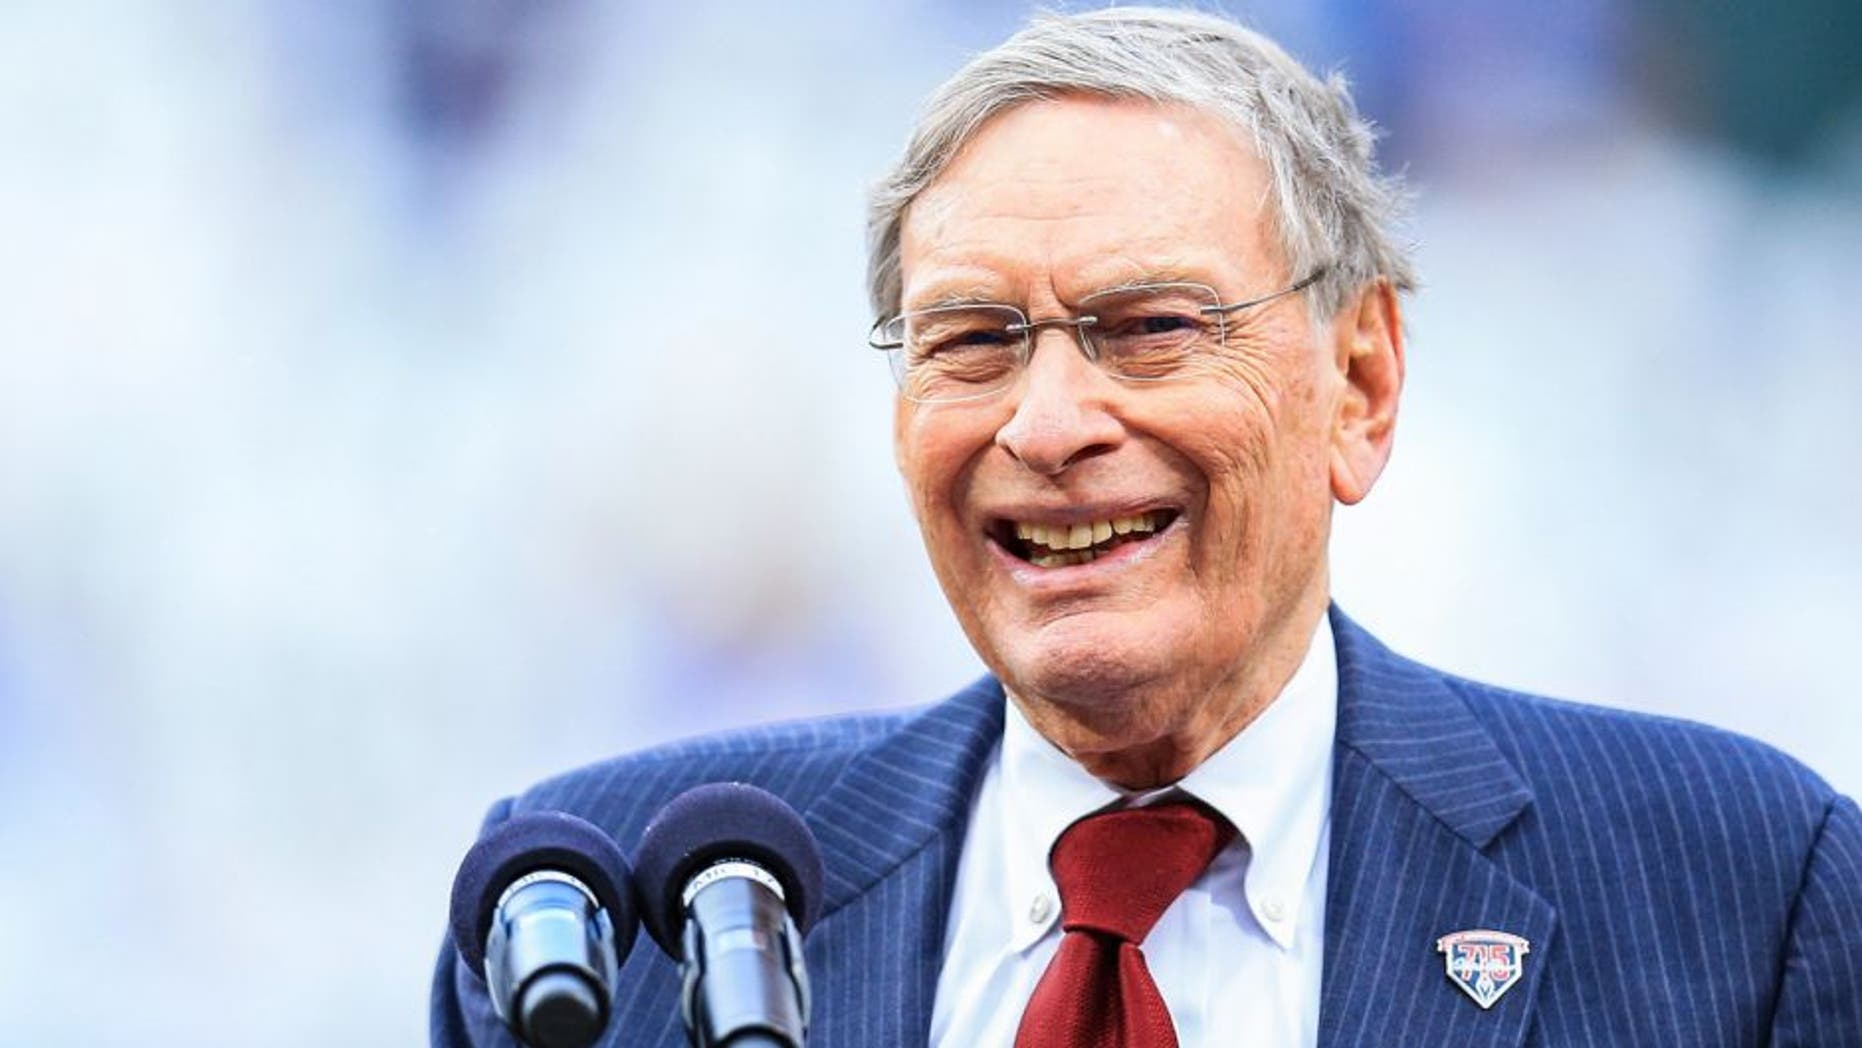 Apr 8, 2014; Atlanta, GA, USA; MLB commissioner Bud Selig speaks during a ceremony honoring the 40th anniversary of Hank Aaron's record breaking 715th home run before the game against the New York Mets at Turner Field. The Mets won 4-0. Mandatory Credit: Daniel Shirey-USA TODAY Sports